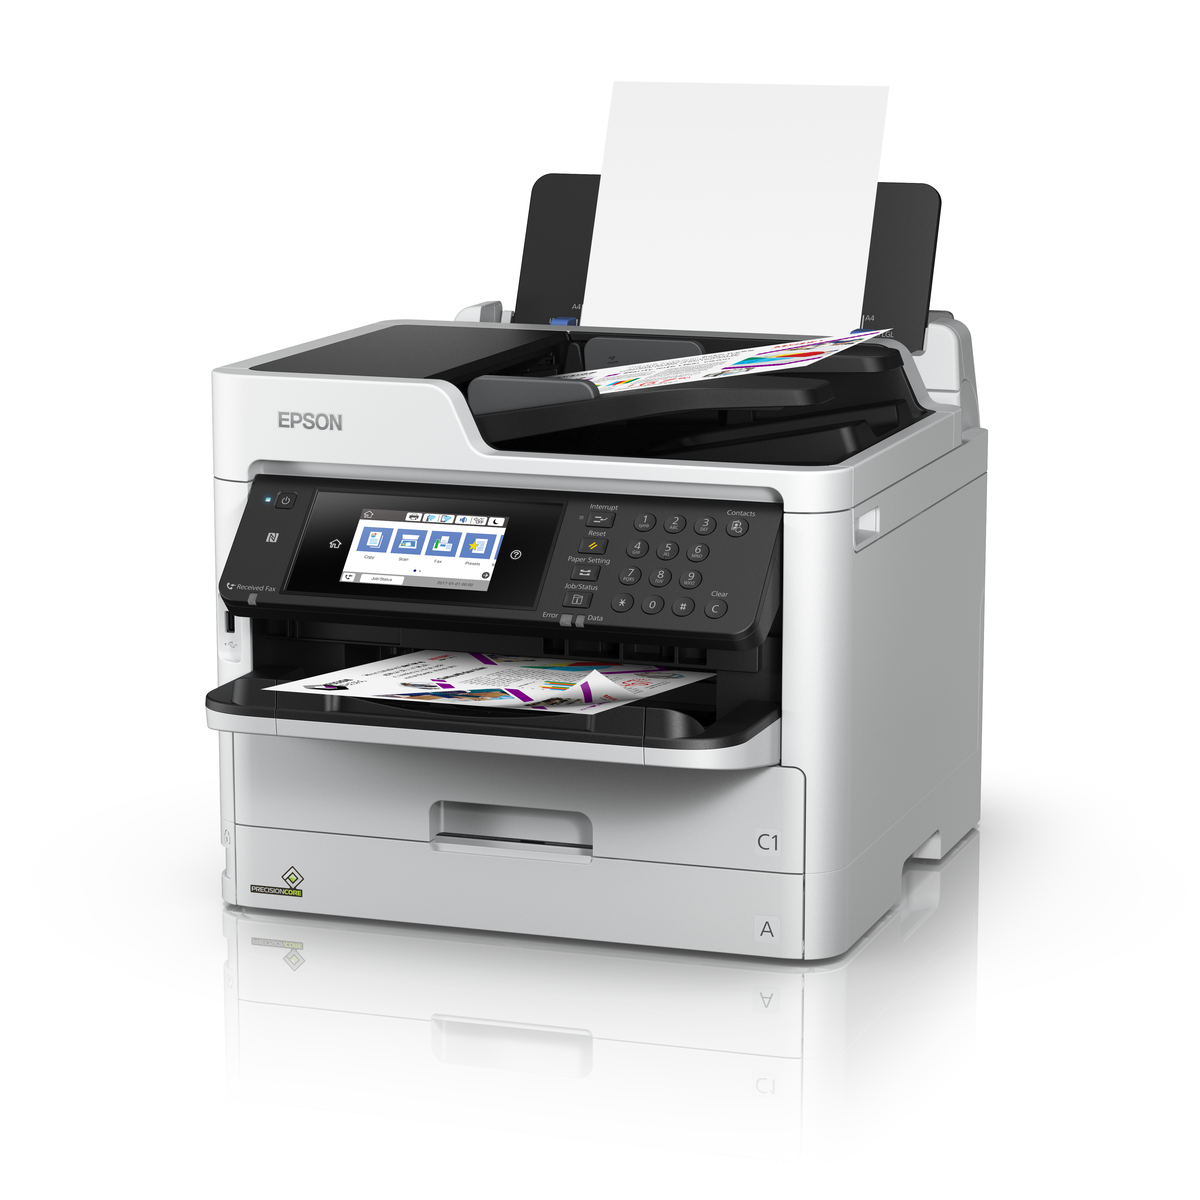 Wink Printer Solutions | Epson WorkForce Pro WF-C5790 Wi-Fi